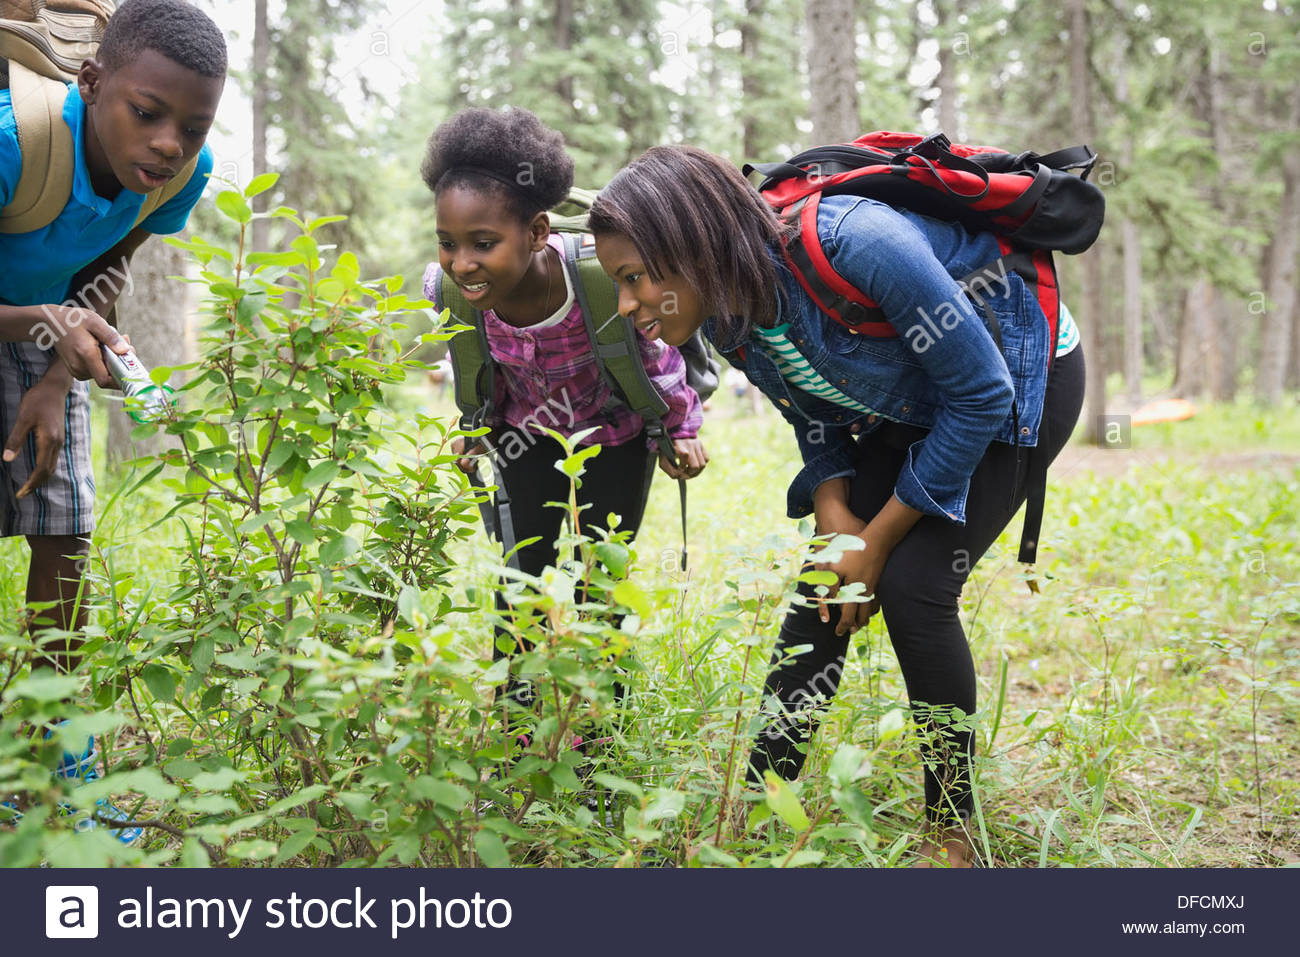 Sibling analyzing plants together in forest - Stock Image